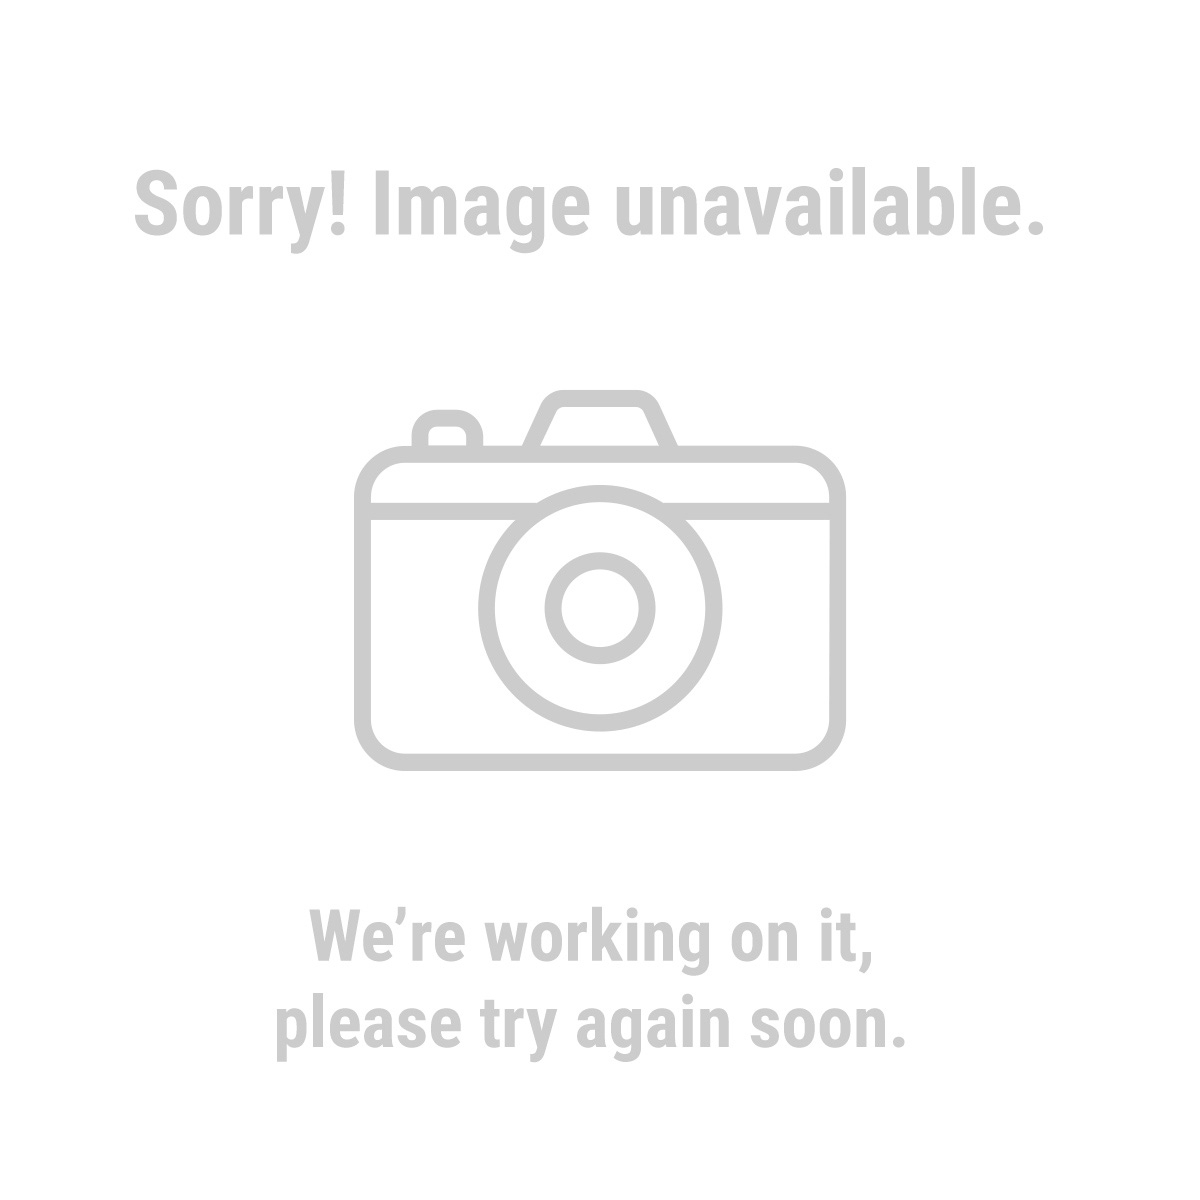 Storehouse 67526 80 Piece Copper Washer Assortment